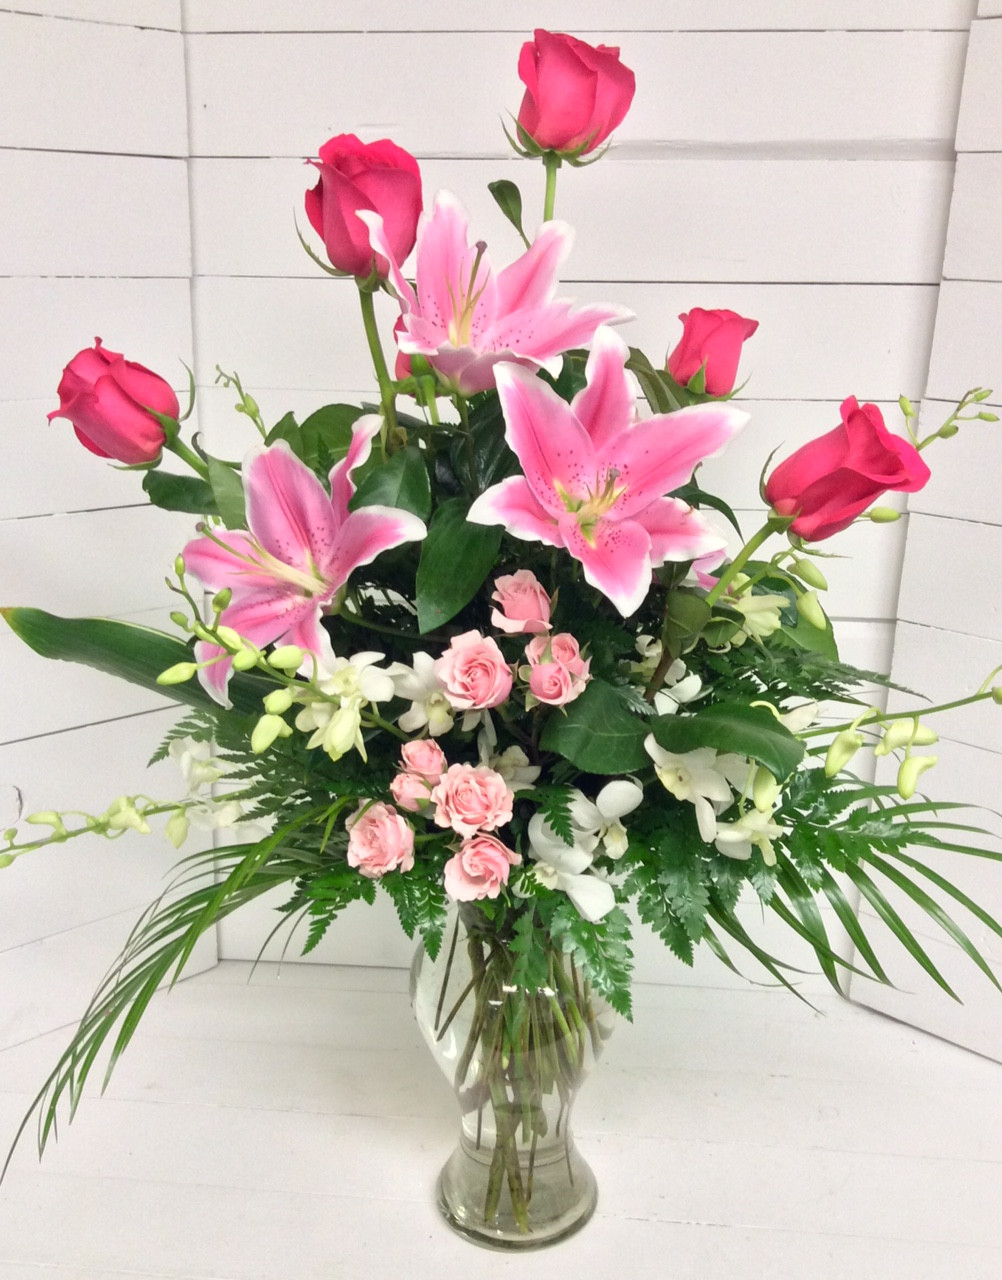 Orchids lilies and hot pink roses with robellini palms image 1 izmirmasajfo